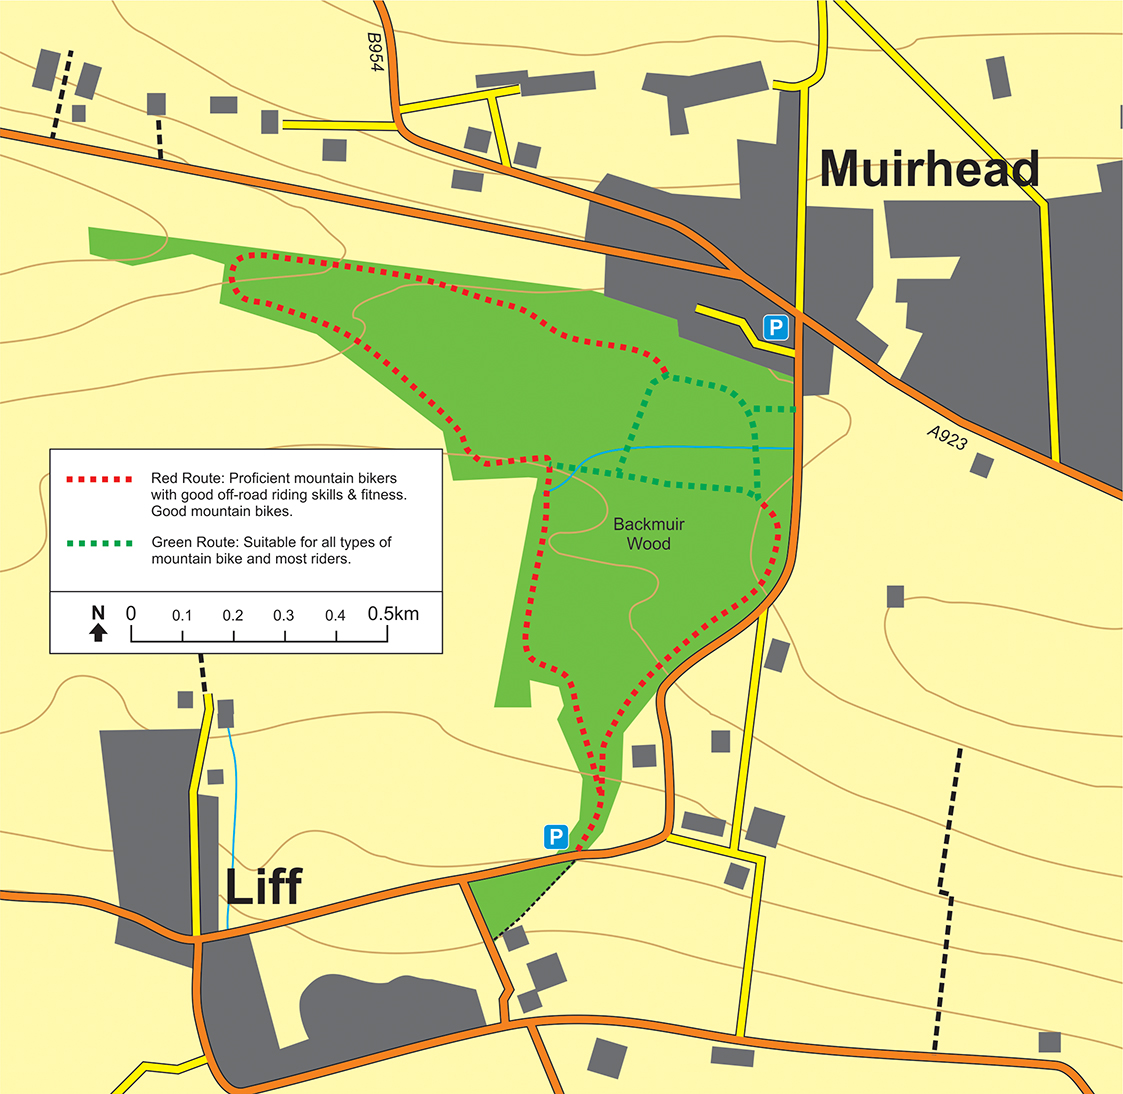 Backmuir Map